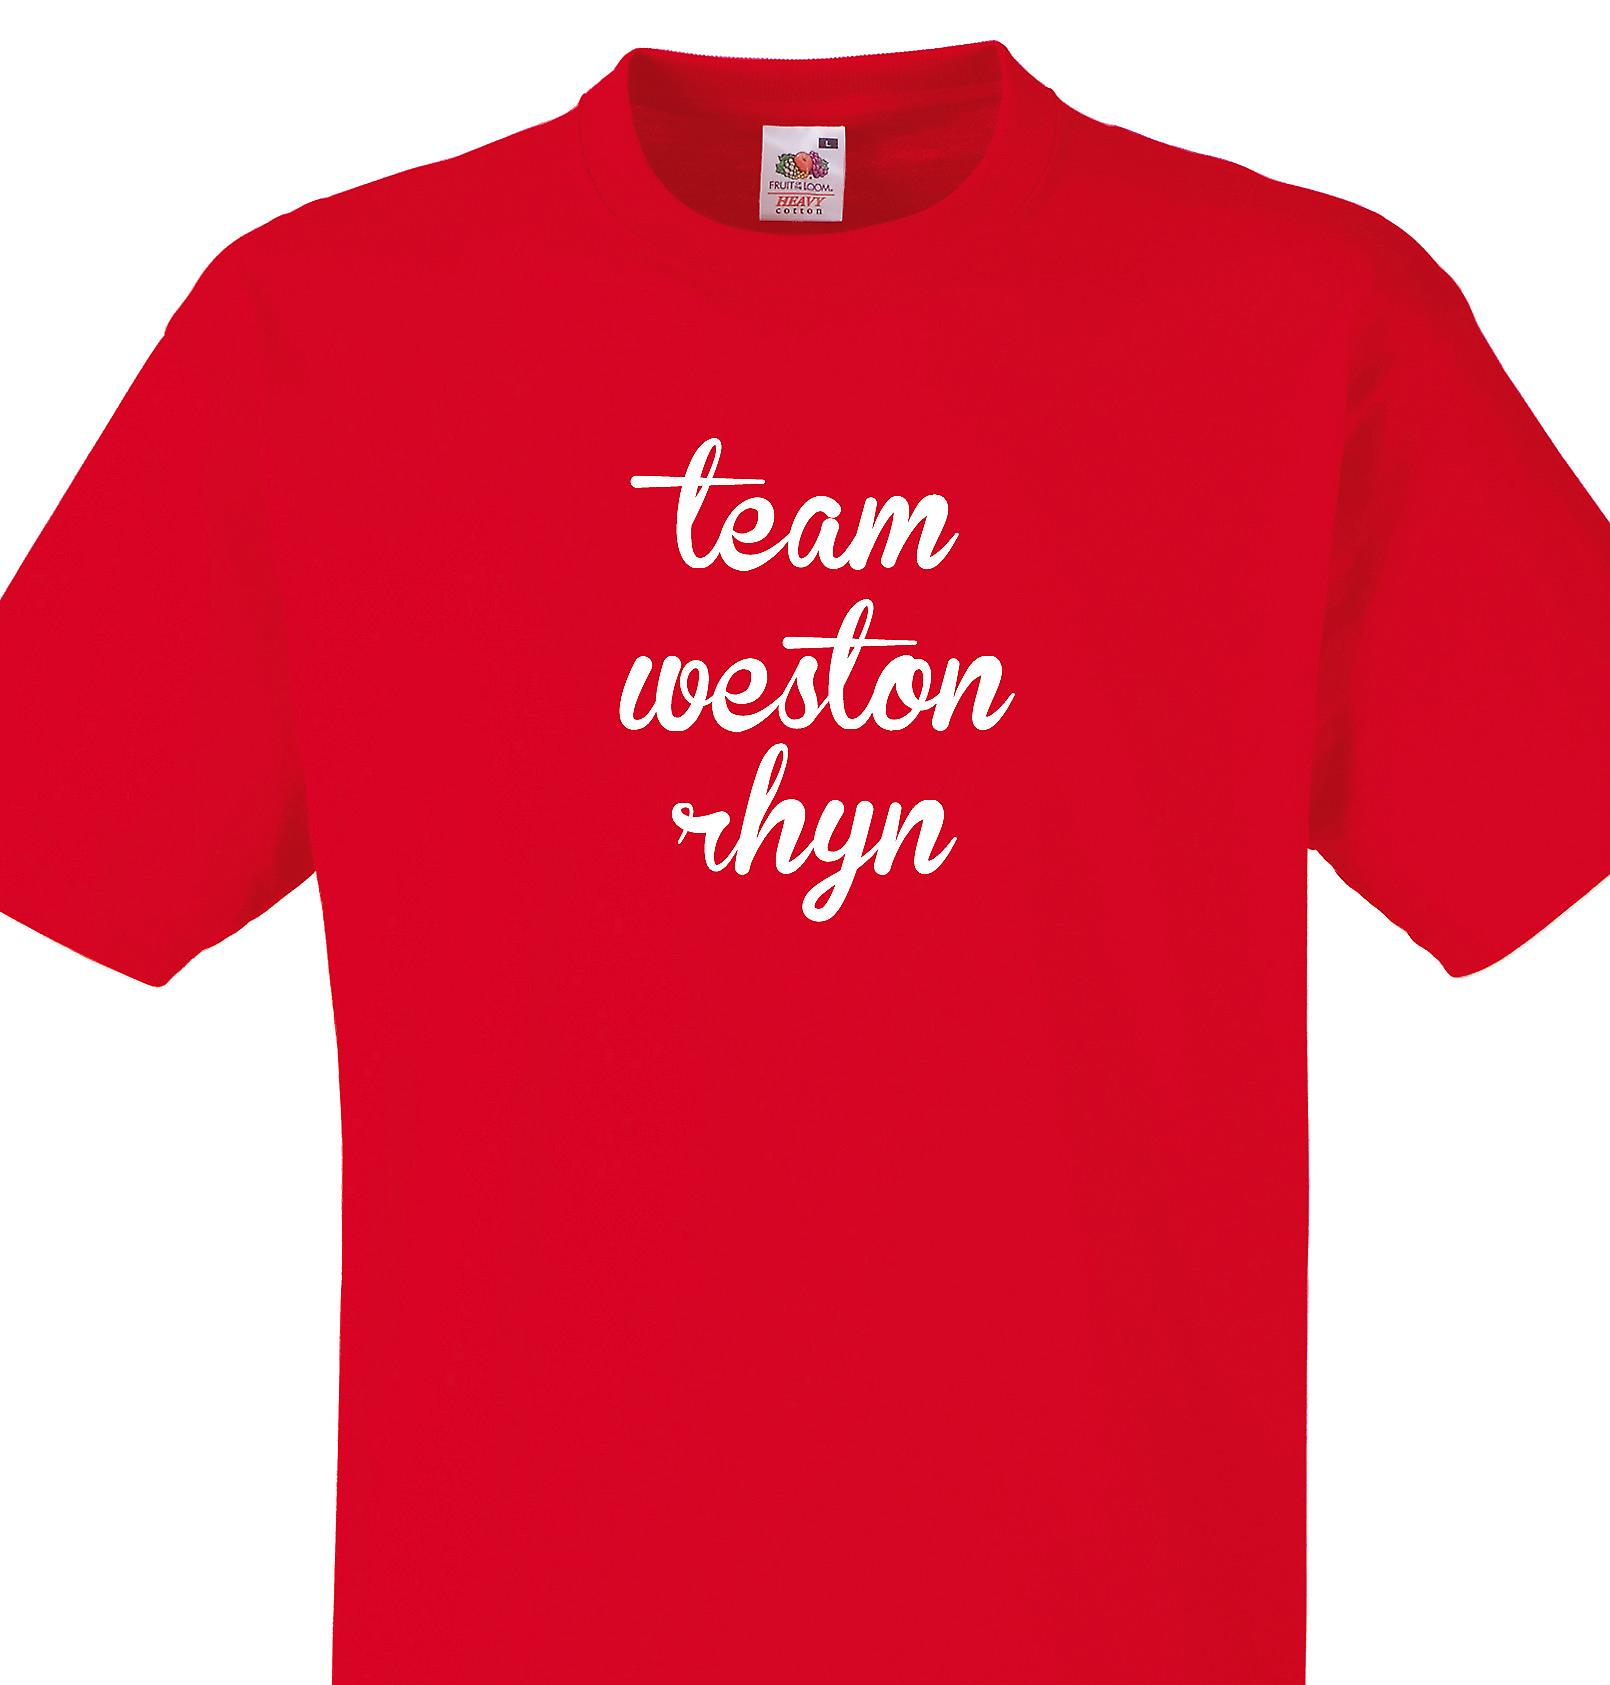 Team Weston rhyn Red T shirt